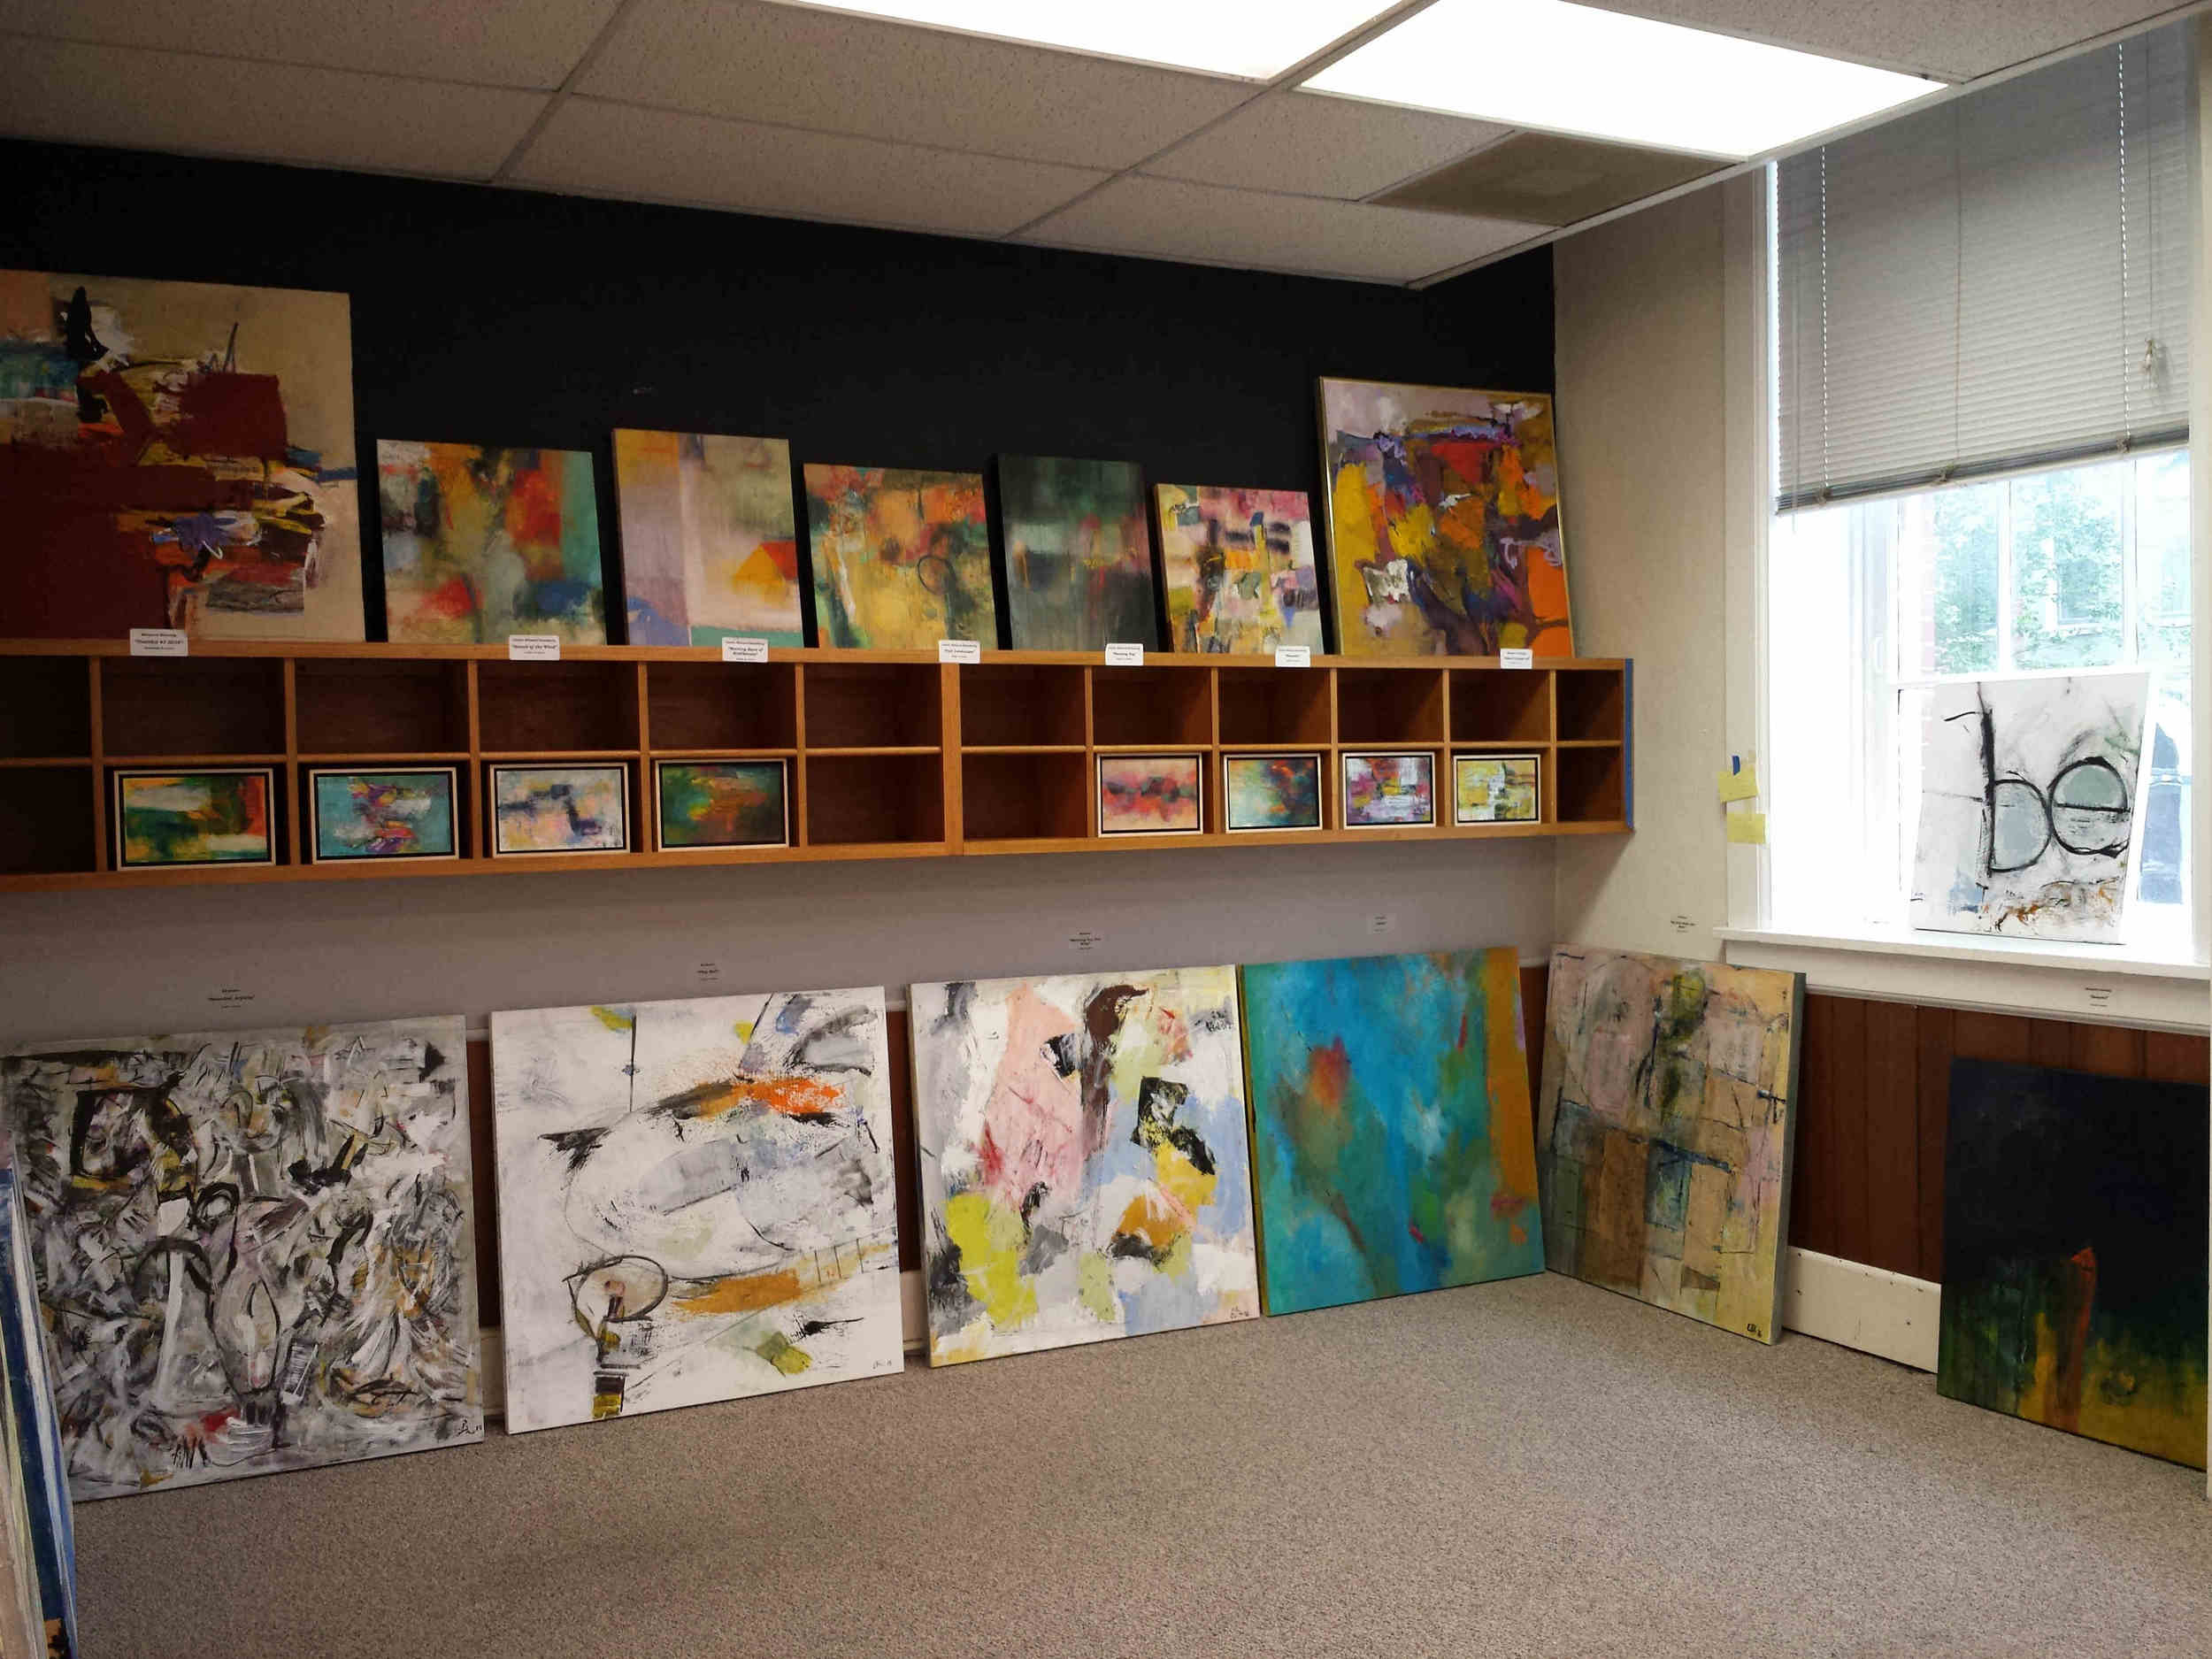 Our space at Artomatic -- 25E